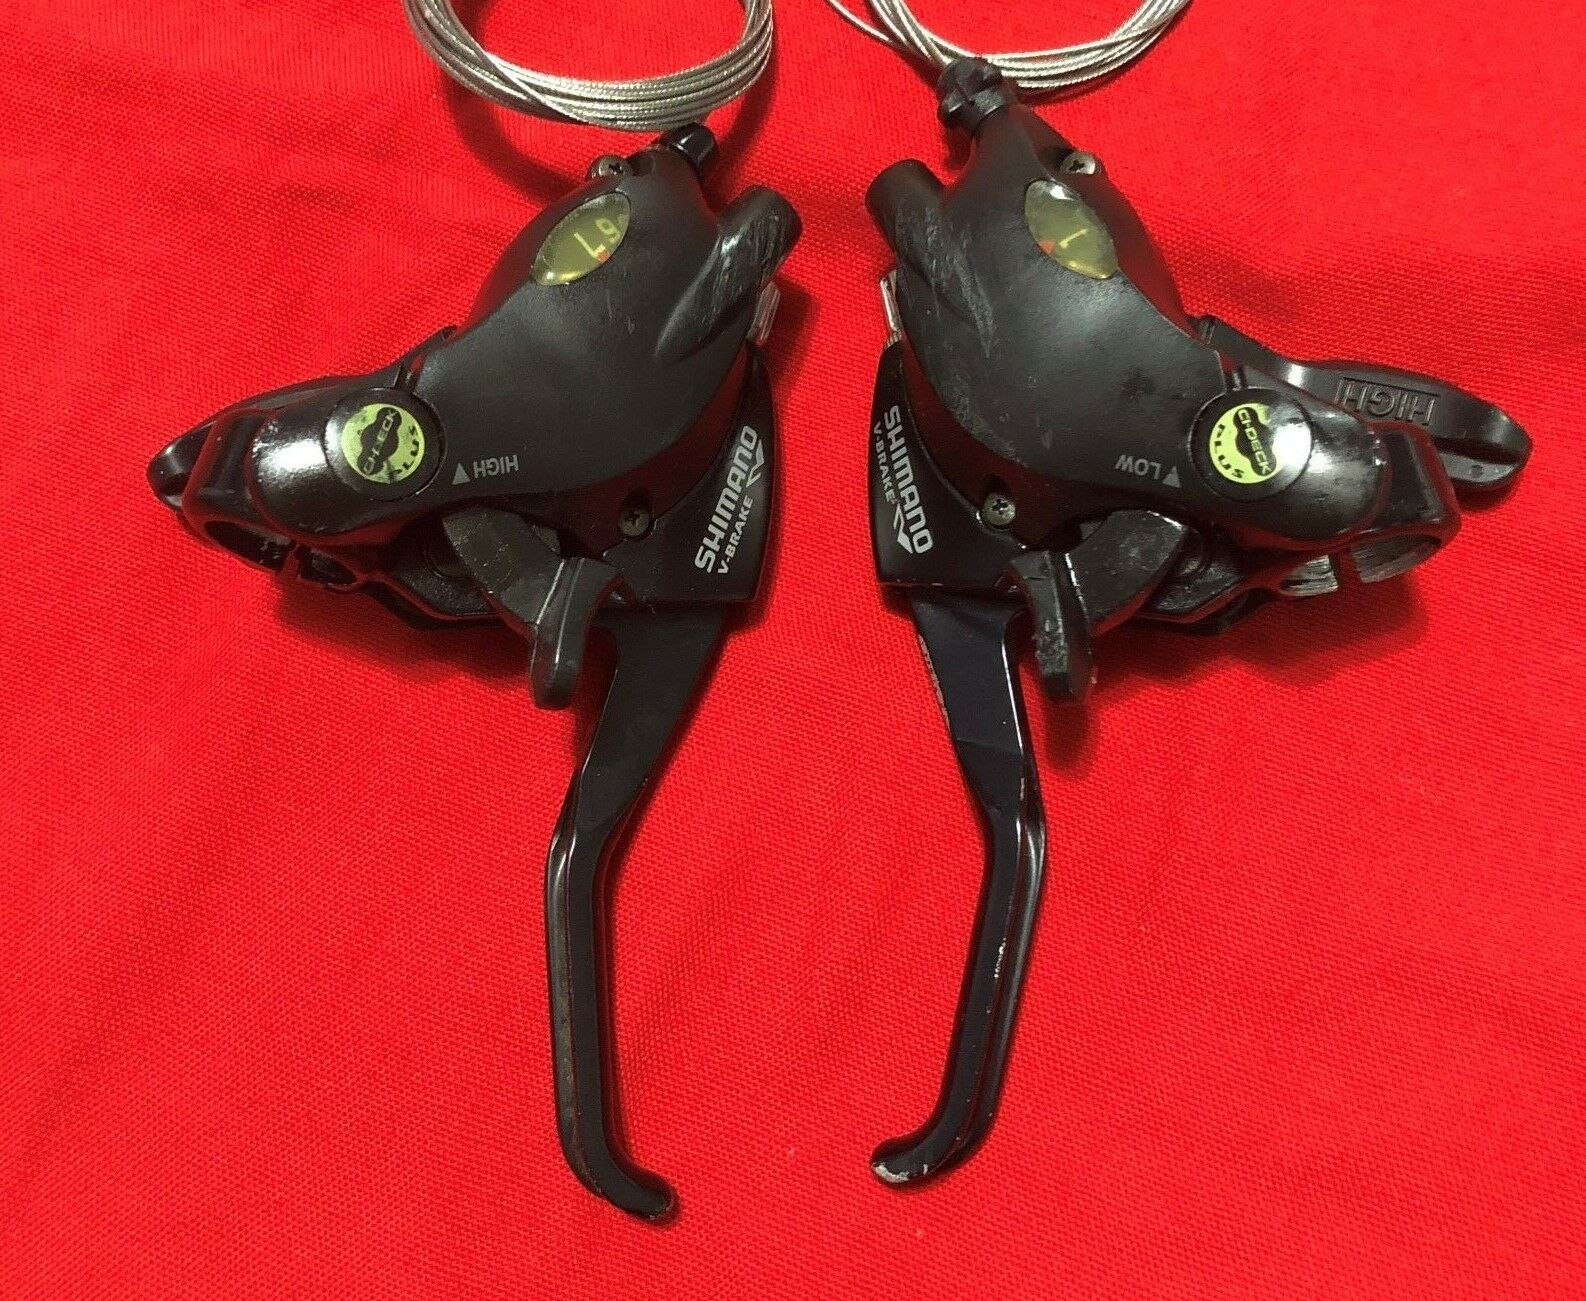 ORIGINAL SHIMANO ST-M29-7  ACERA SHIFT BRAKE  LEVER SET FOR 7 SPEED  fast delivery and free shipping on all orders